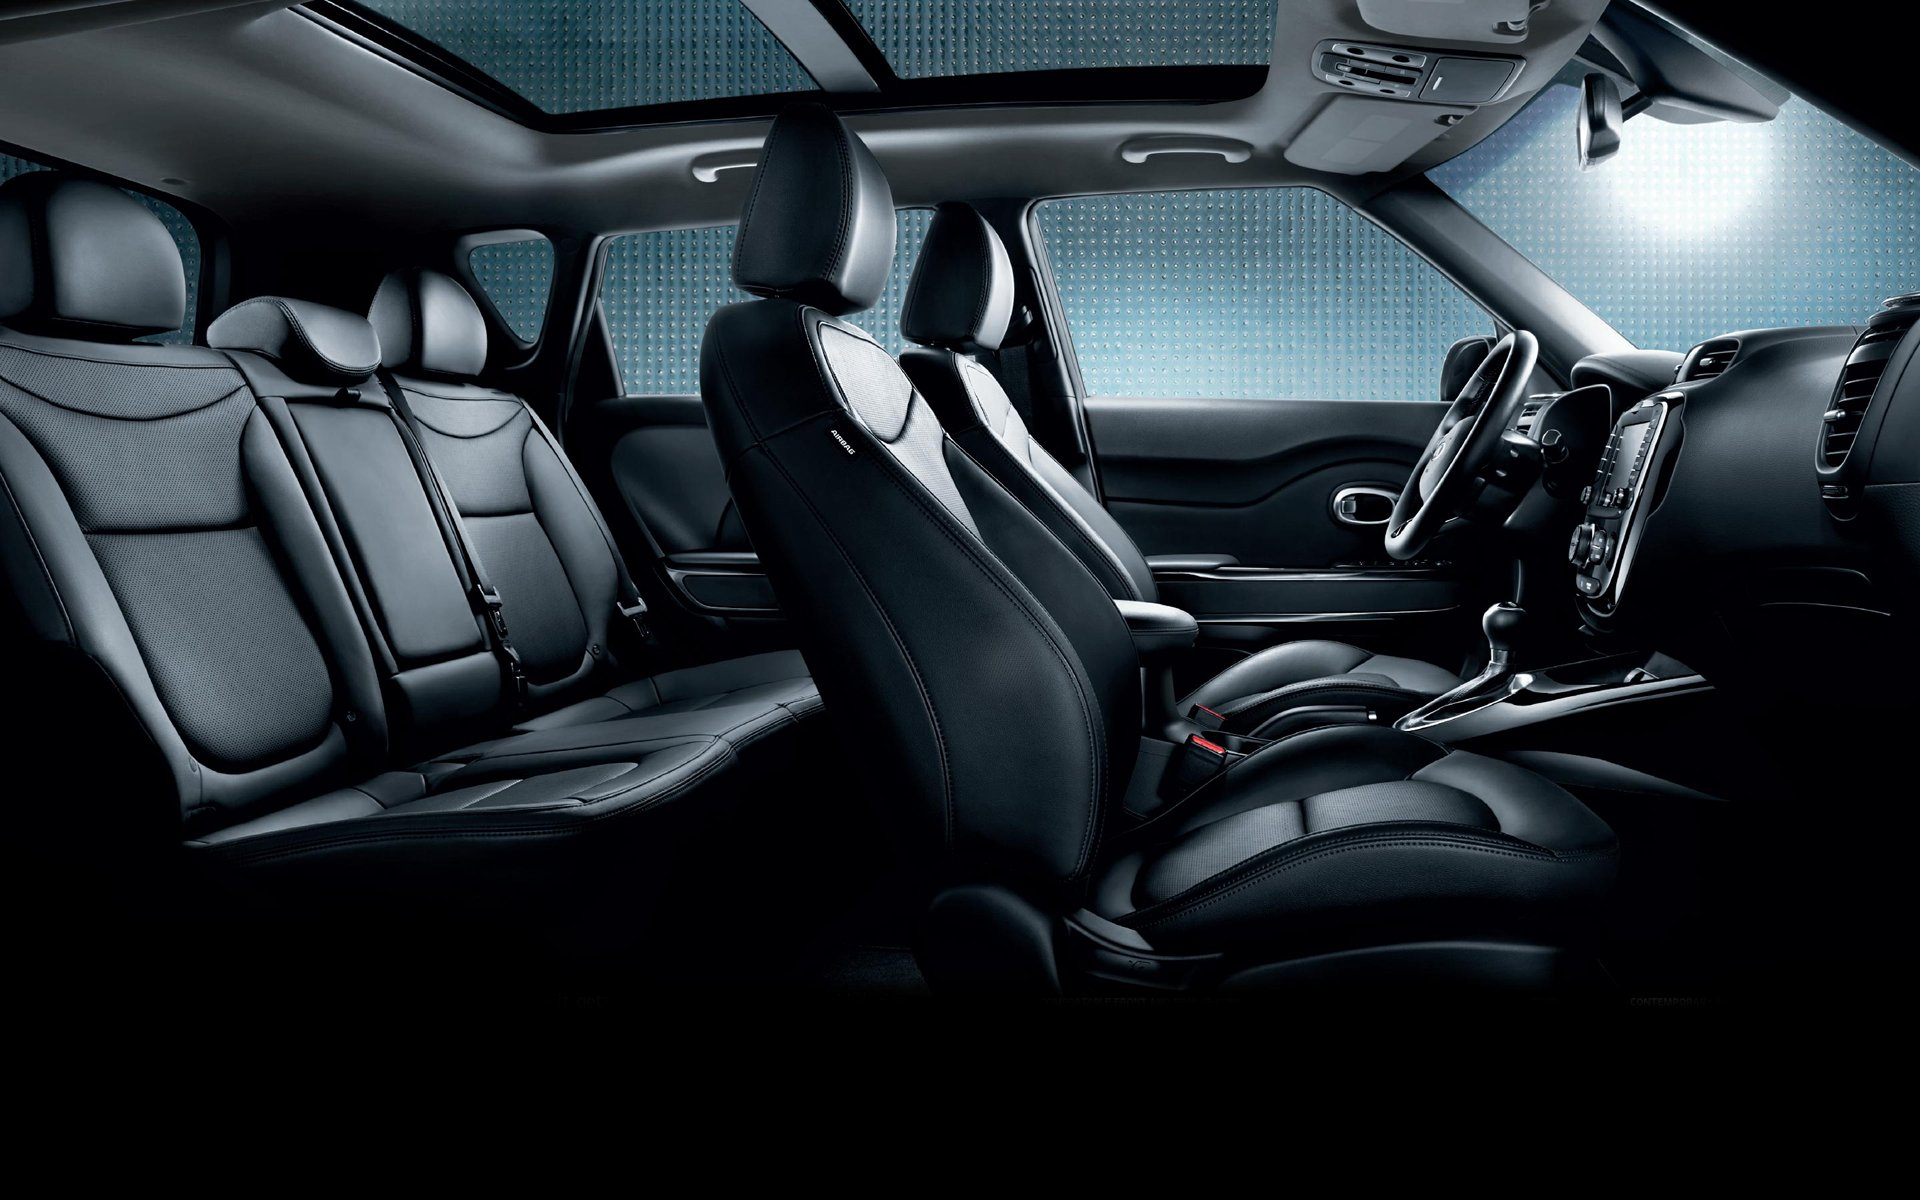 2016 Kia Soul Full Interior